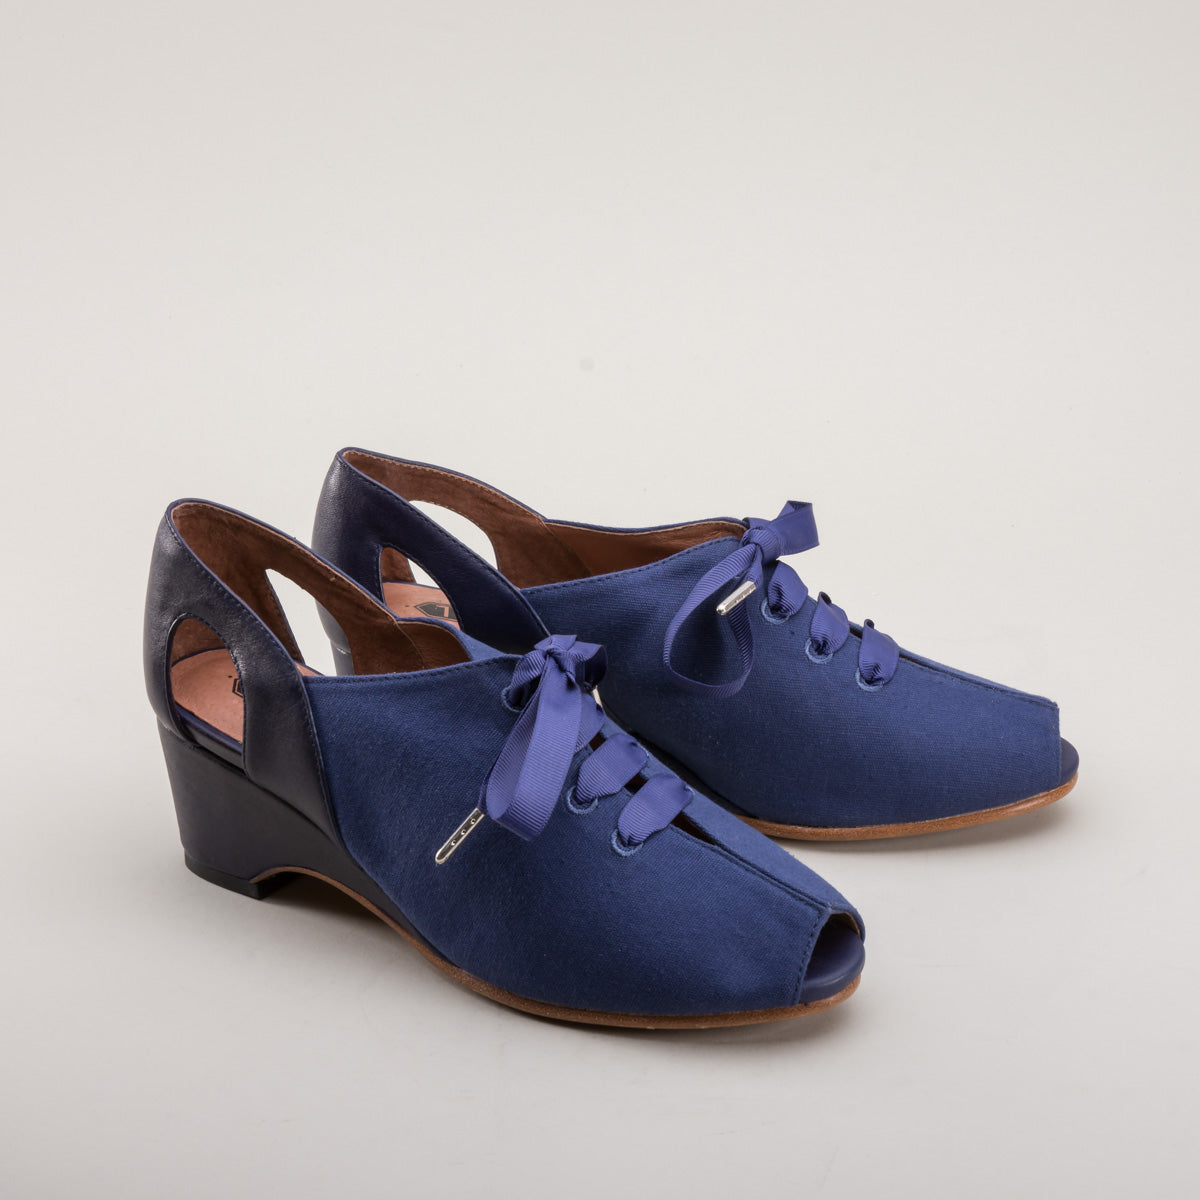 Daphne Retro Wedge Sandals (Navy Blue)